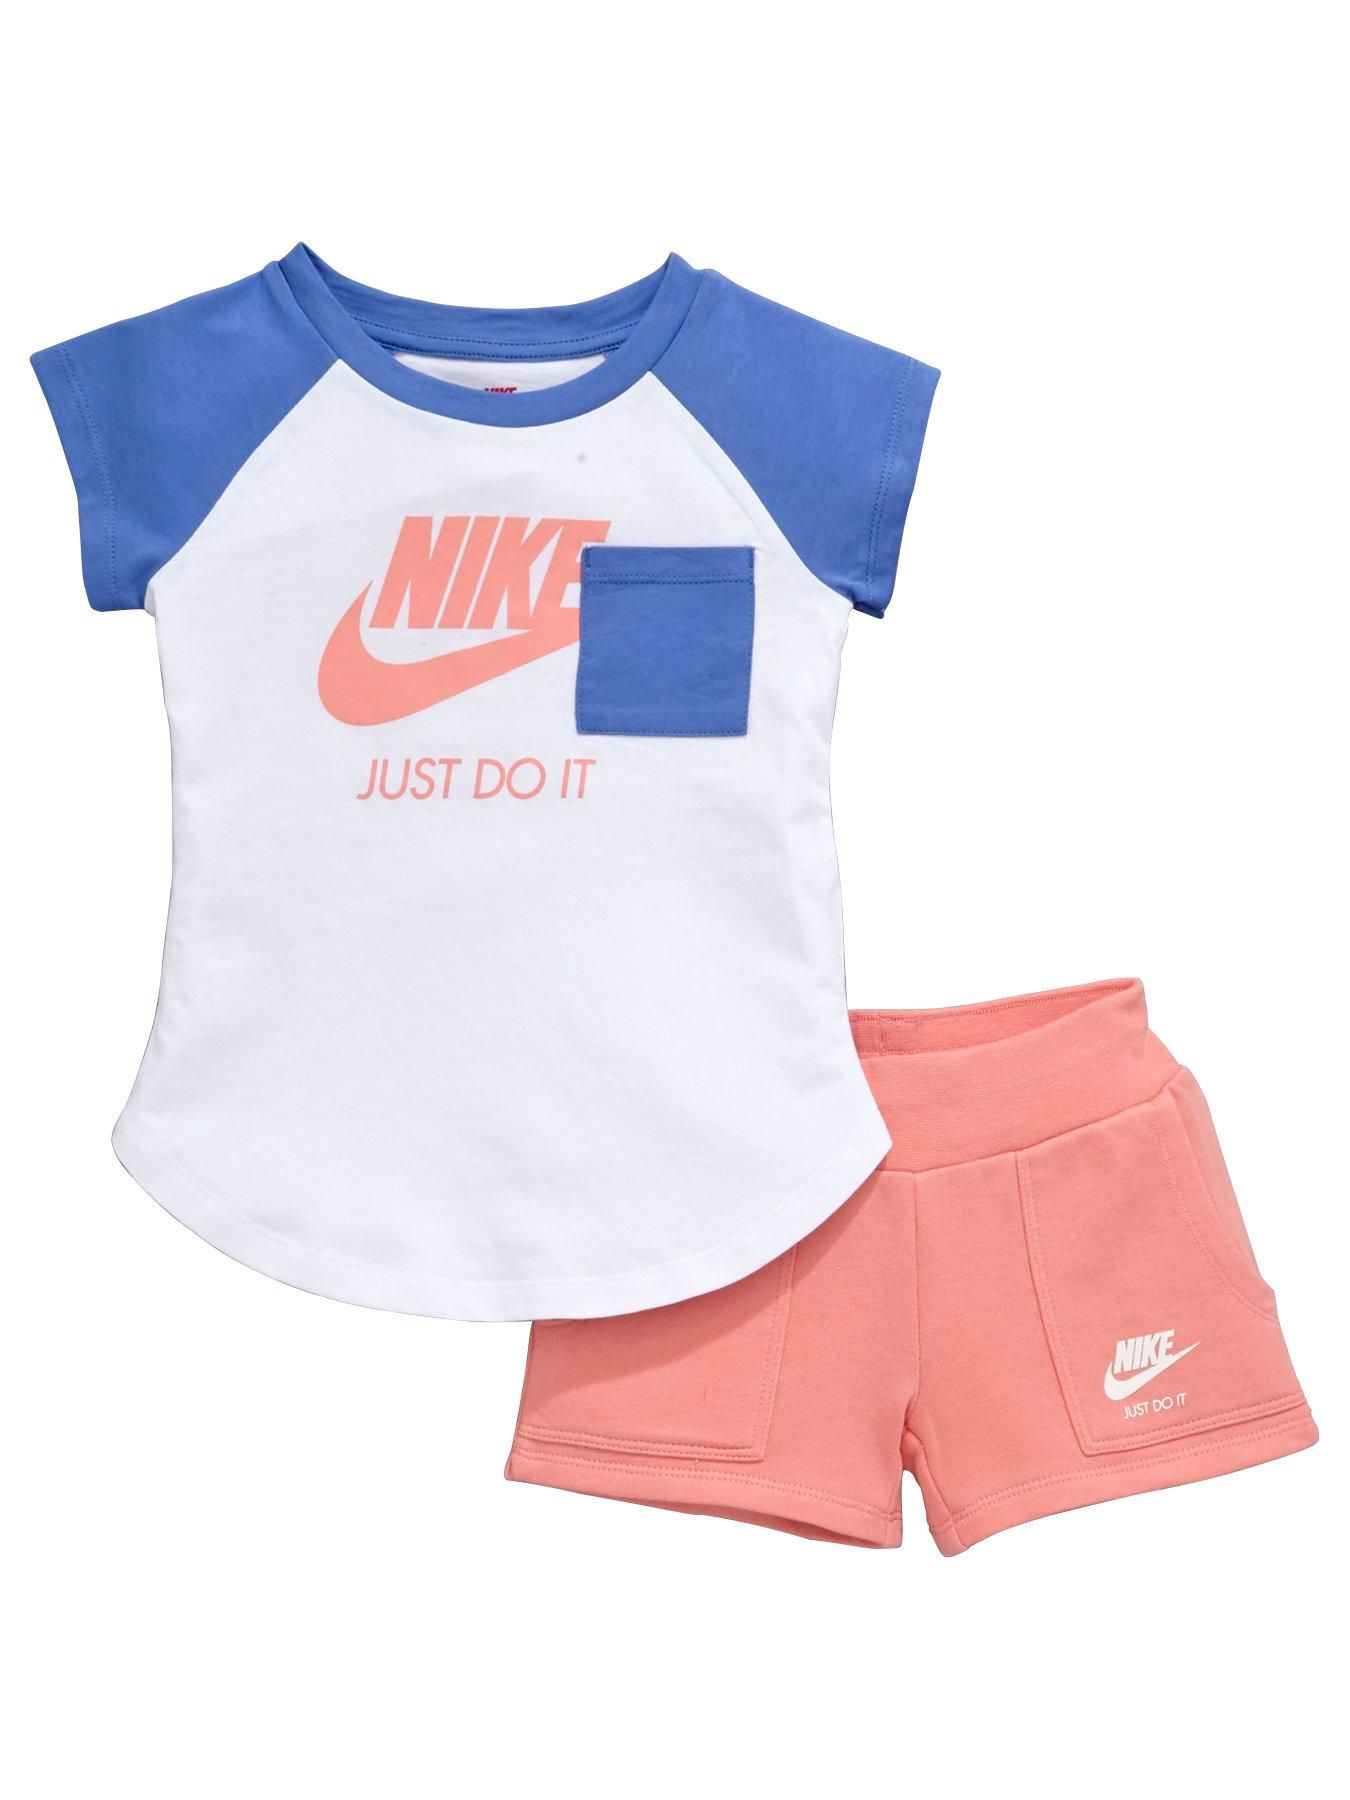 Nike Baby Girl Clothes Unique Washing Instructions Machine Washable100% Cotton  Littlewood Design Inspiration